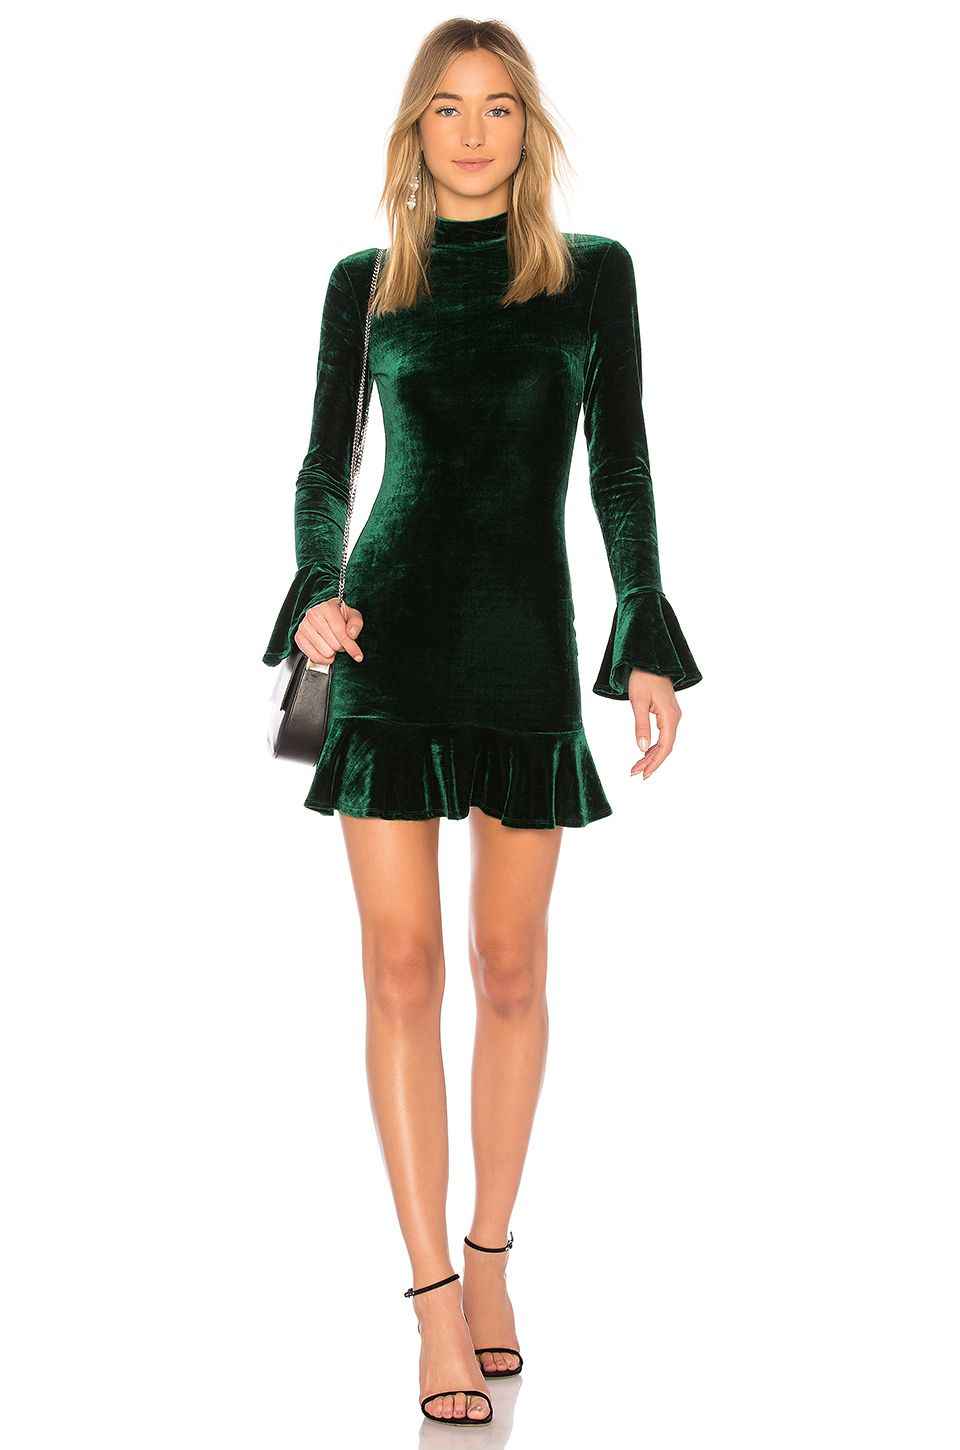 20 Cute Christmas Party Outfits , What to Wear to a Holiday